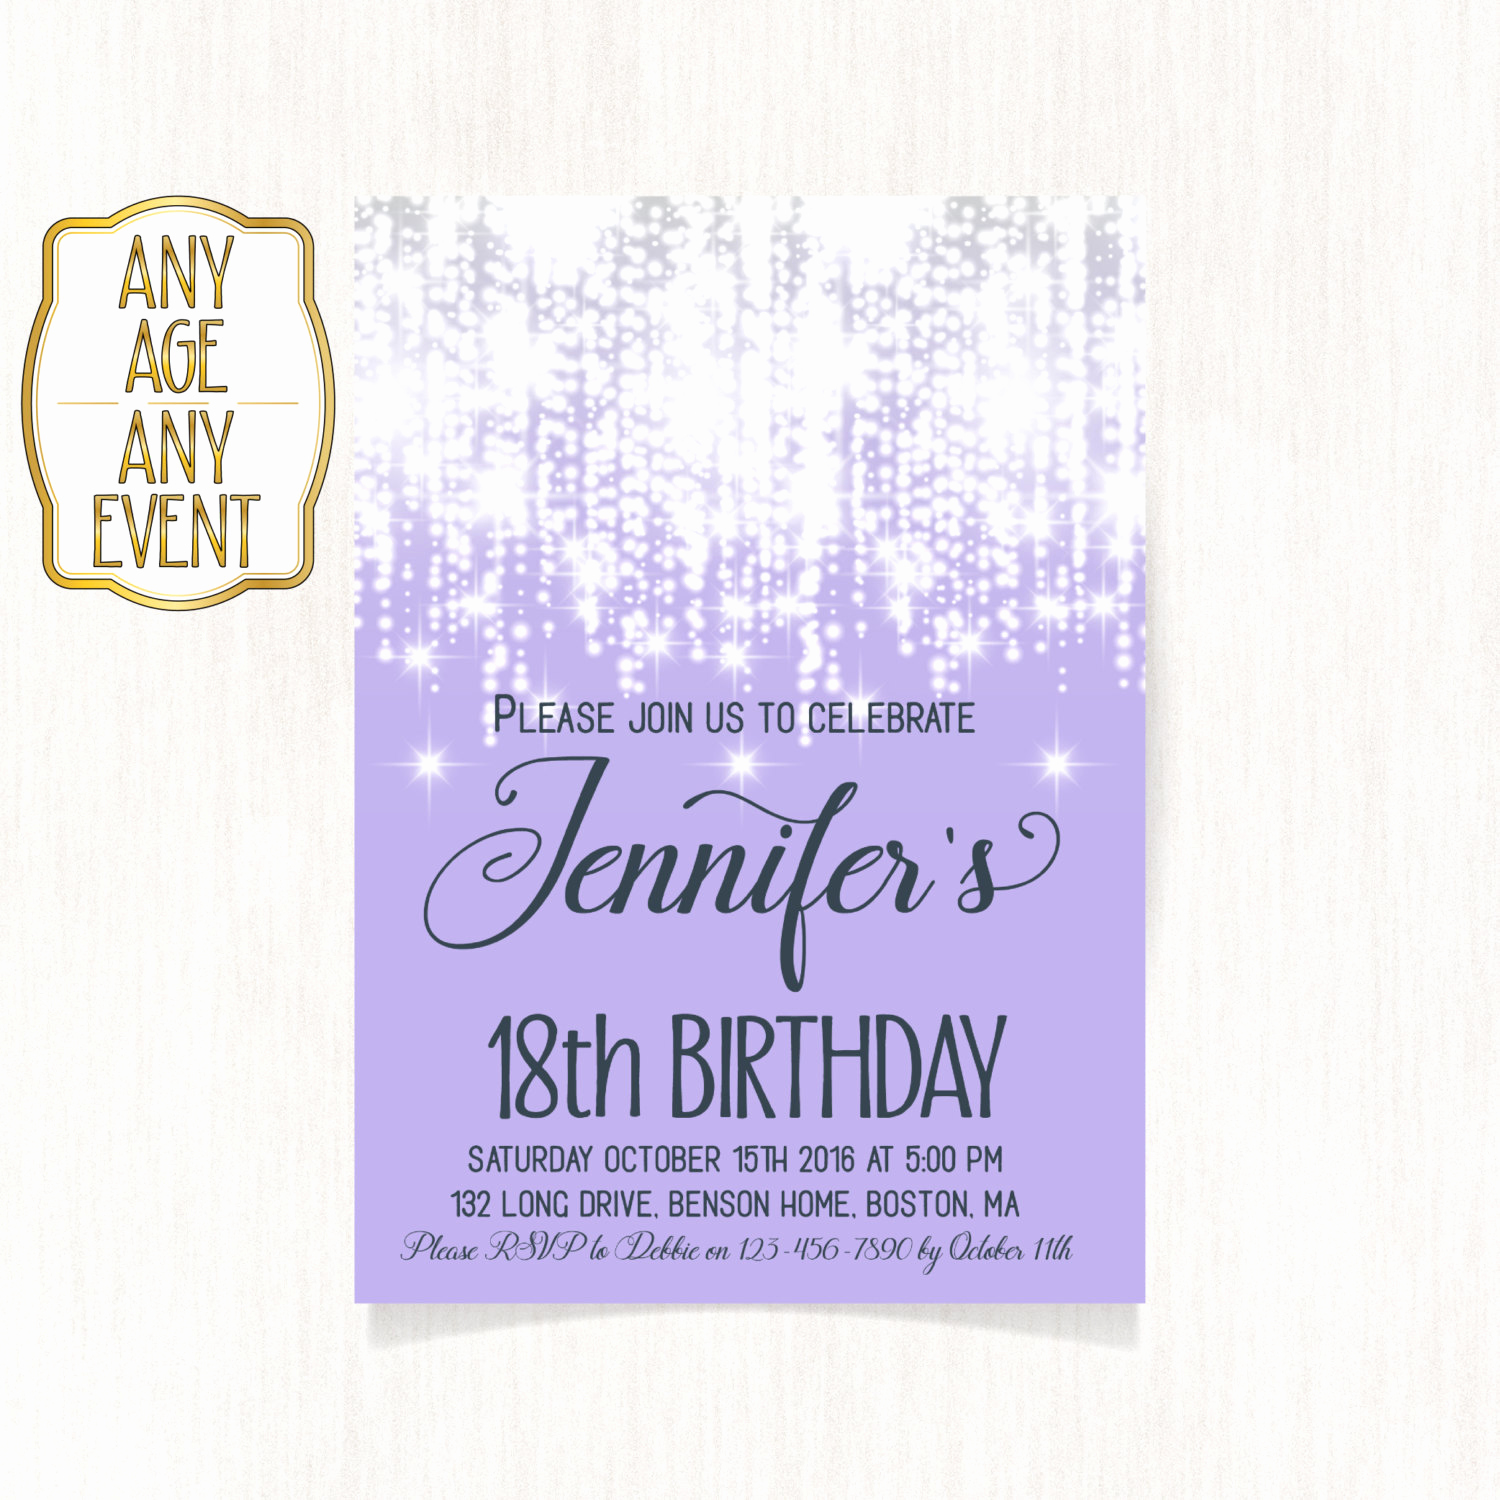 18th Birthday Invitation Wording New 18th Birthday Invitation Luxury Invitation Birthday Party